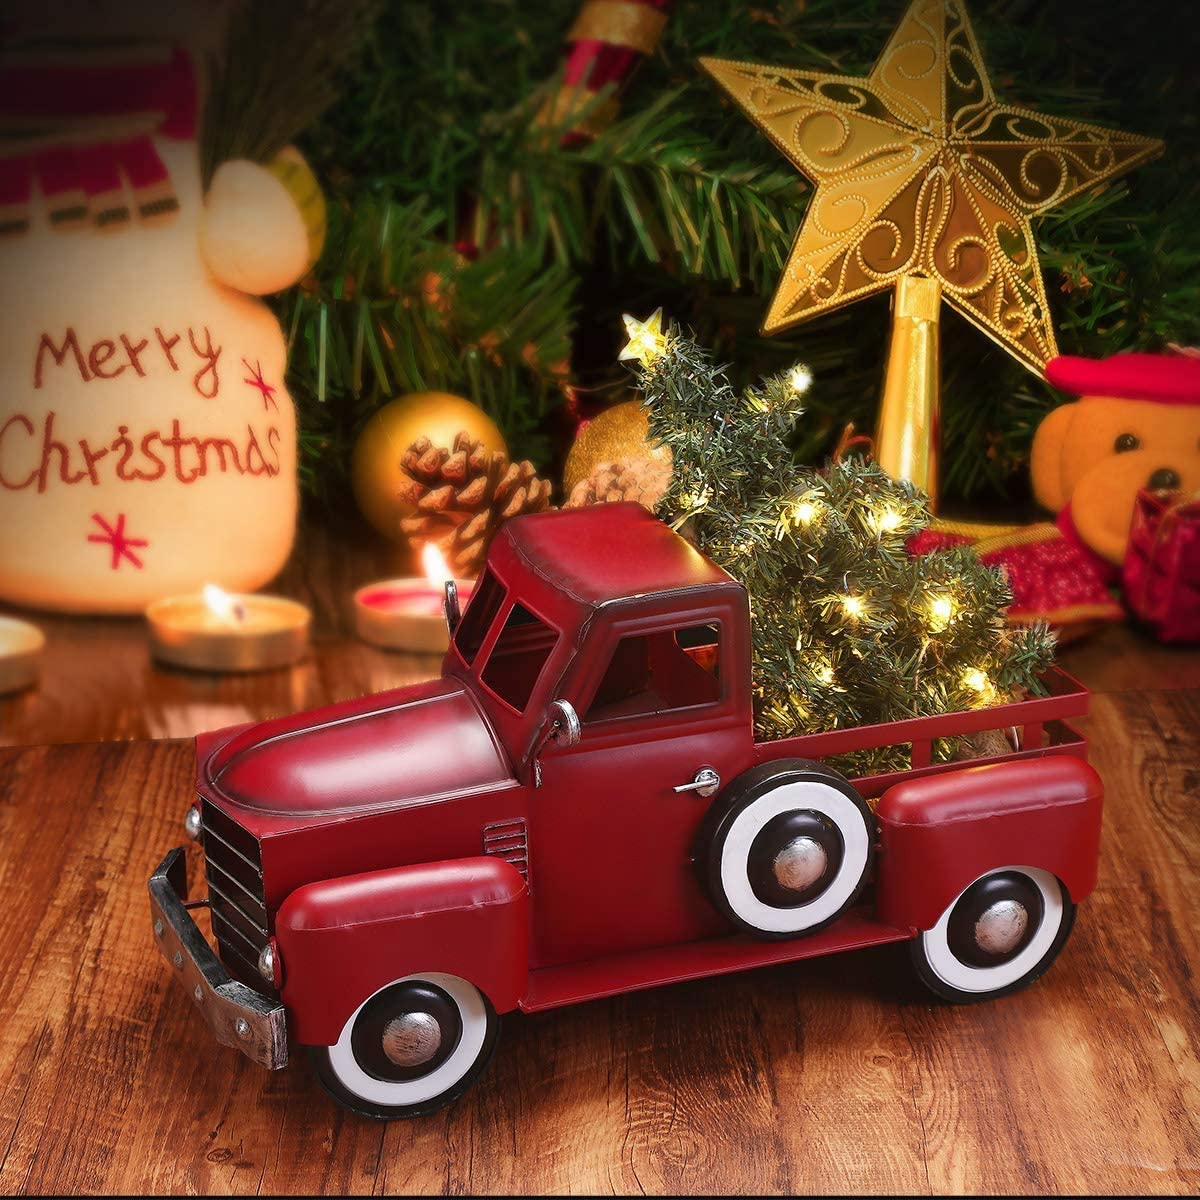 MH Christmas Truck with Tree Ornament Set, 3AA Battery Operated 30 pcs Warm White LEDs Metal Pickup Truck Car for Christmas Decorations Table Top Decor, Large